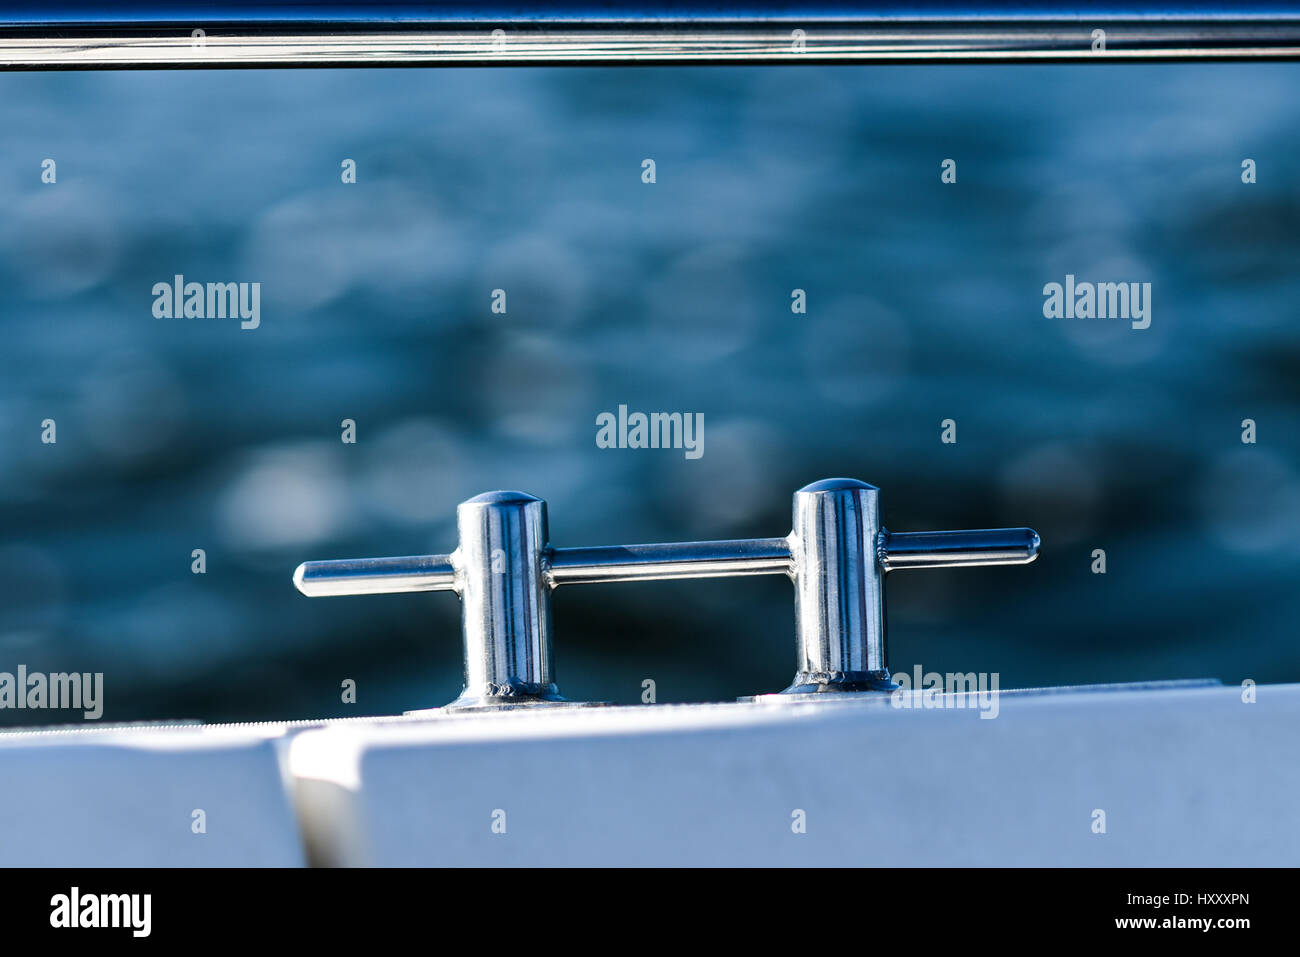 Cleat Block Stock Photos & Cleat Block Stock Images - Alamy